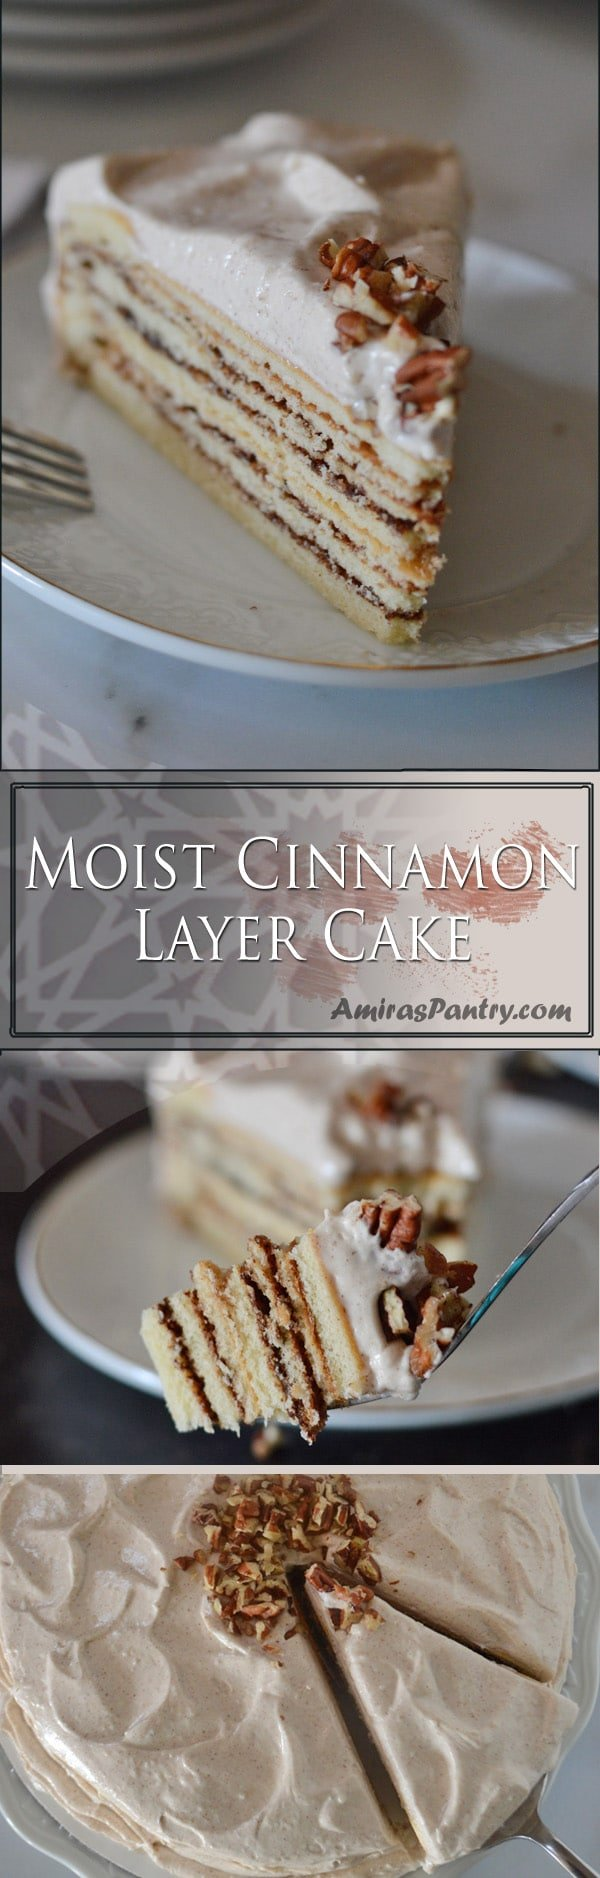 Cinnamon lovers rejoice!. This easy, moist cinnamon cake recipe from scratch is a foolproof by all means.